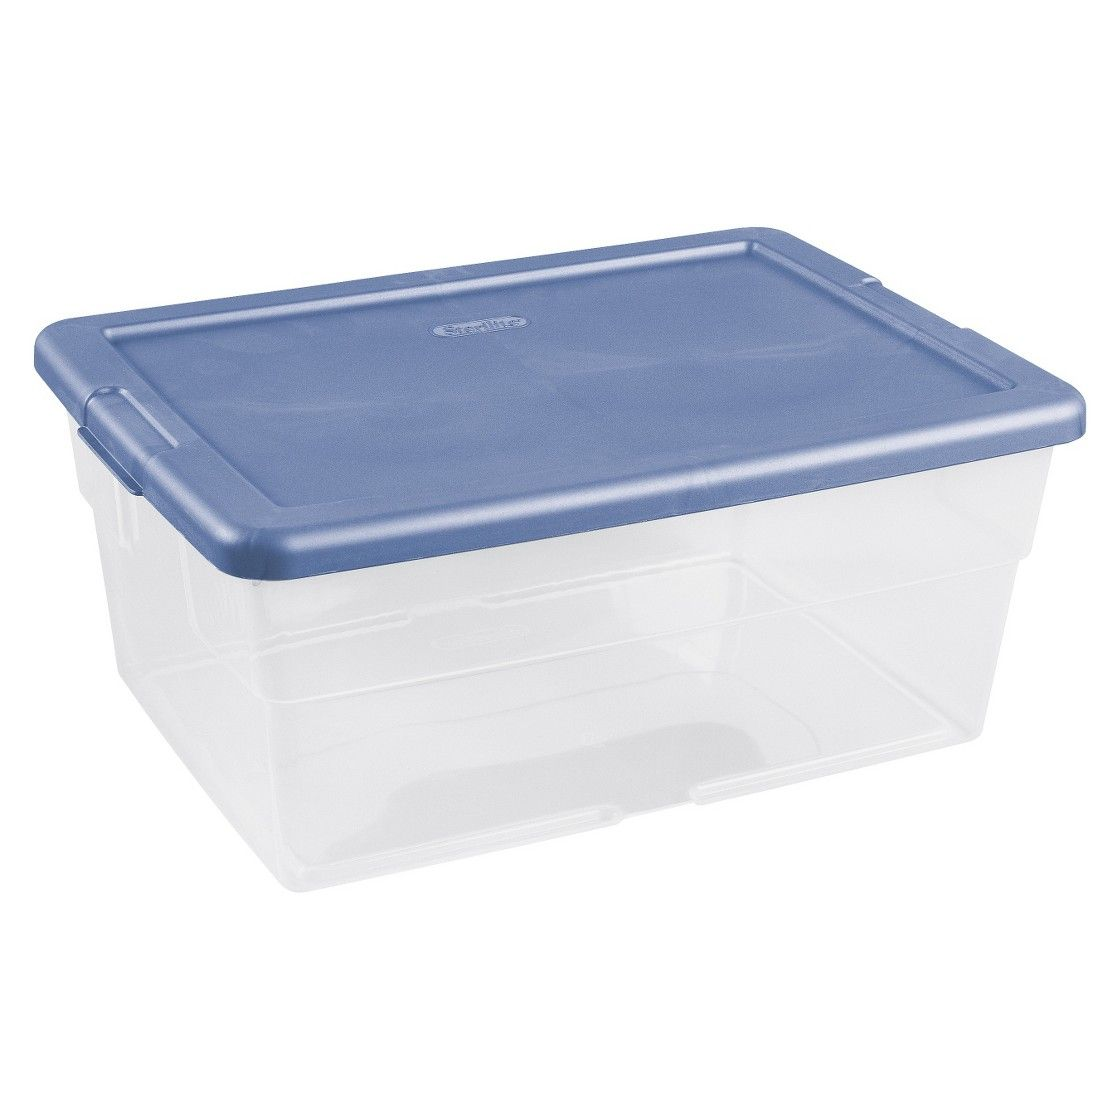 Sterilite Clearview Latch Storage Tote Set Of 12 Transparent With Blue Lid 16qt Clear Storage Bins Sterilite Storage Bins